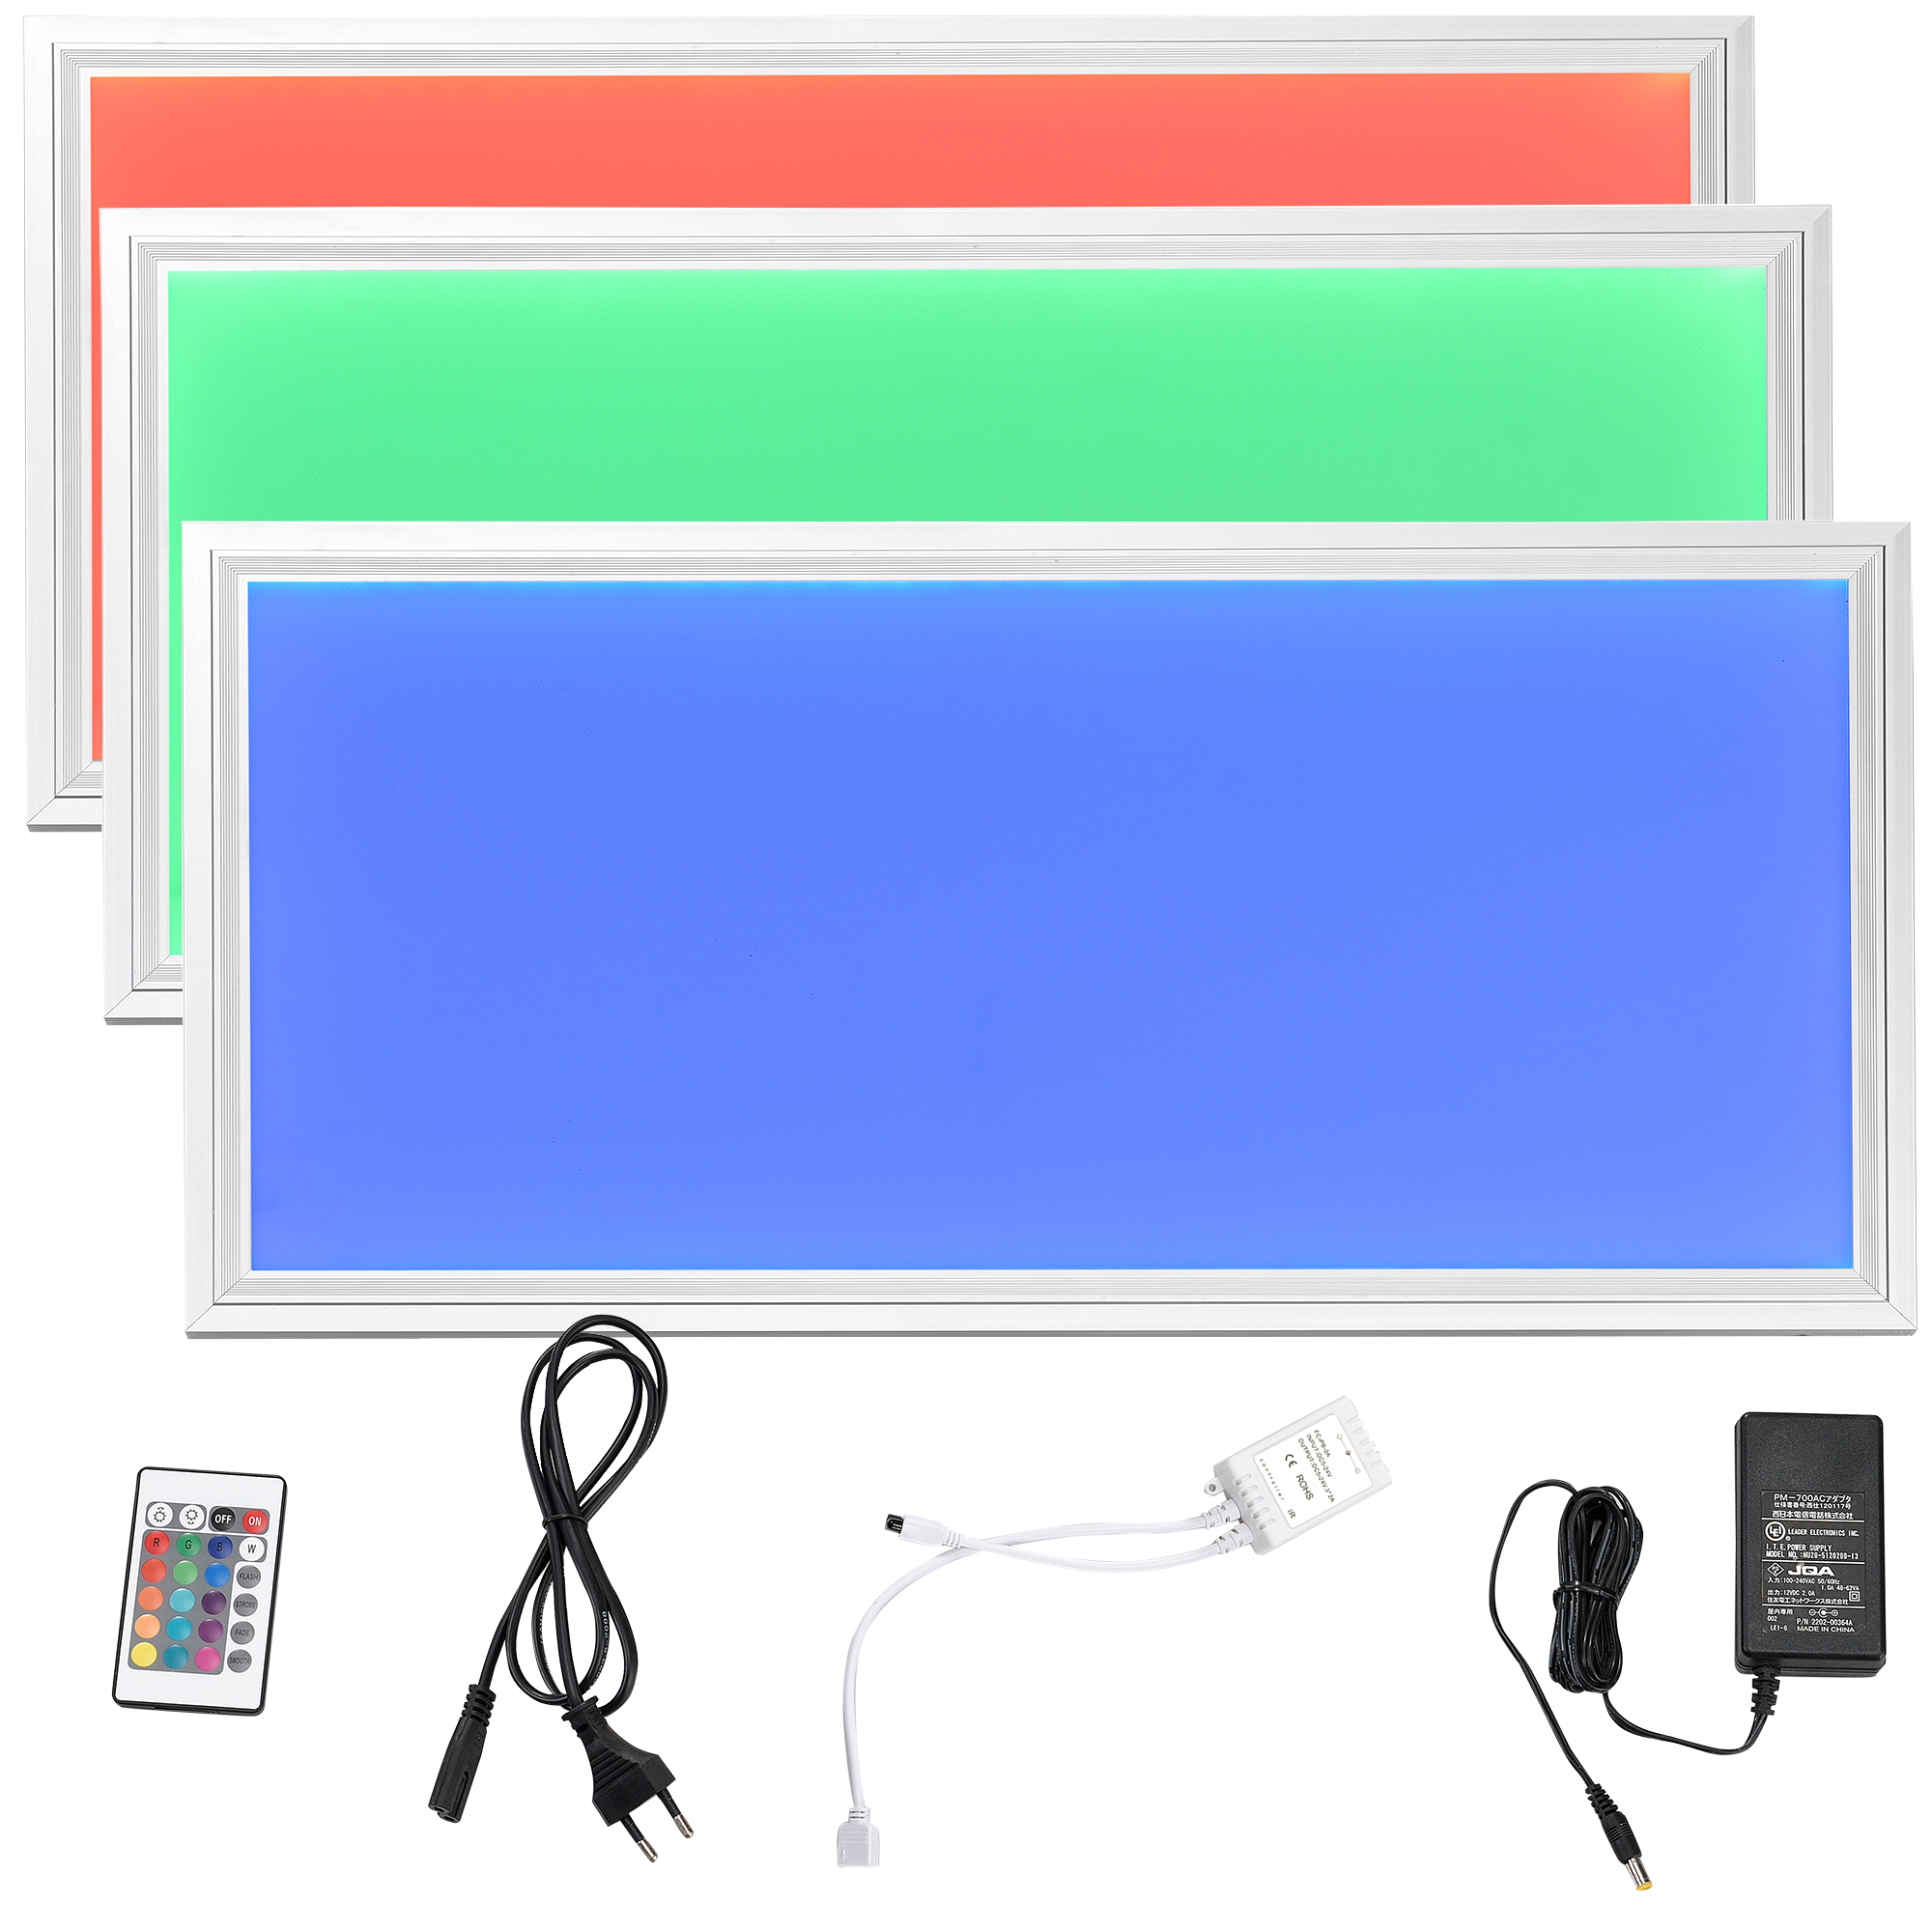 led rgb panel 62x62cm ultraslim farbwechsel fernbedienung dimmbar ebay. Black Bedroom Furniture Sets. Home Design Ideas